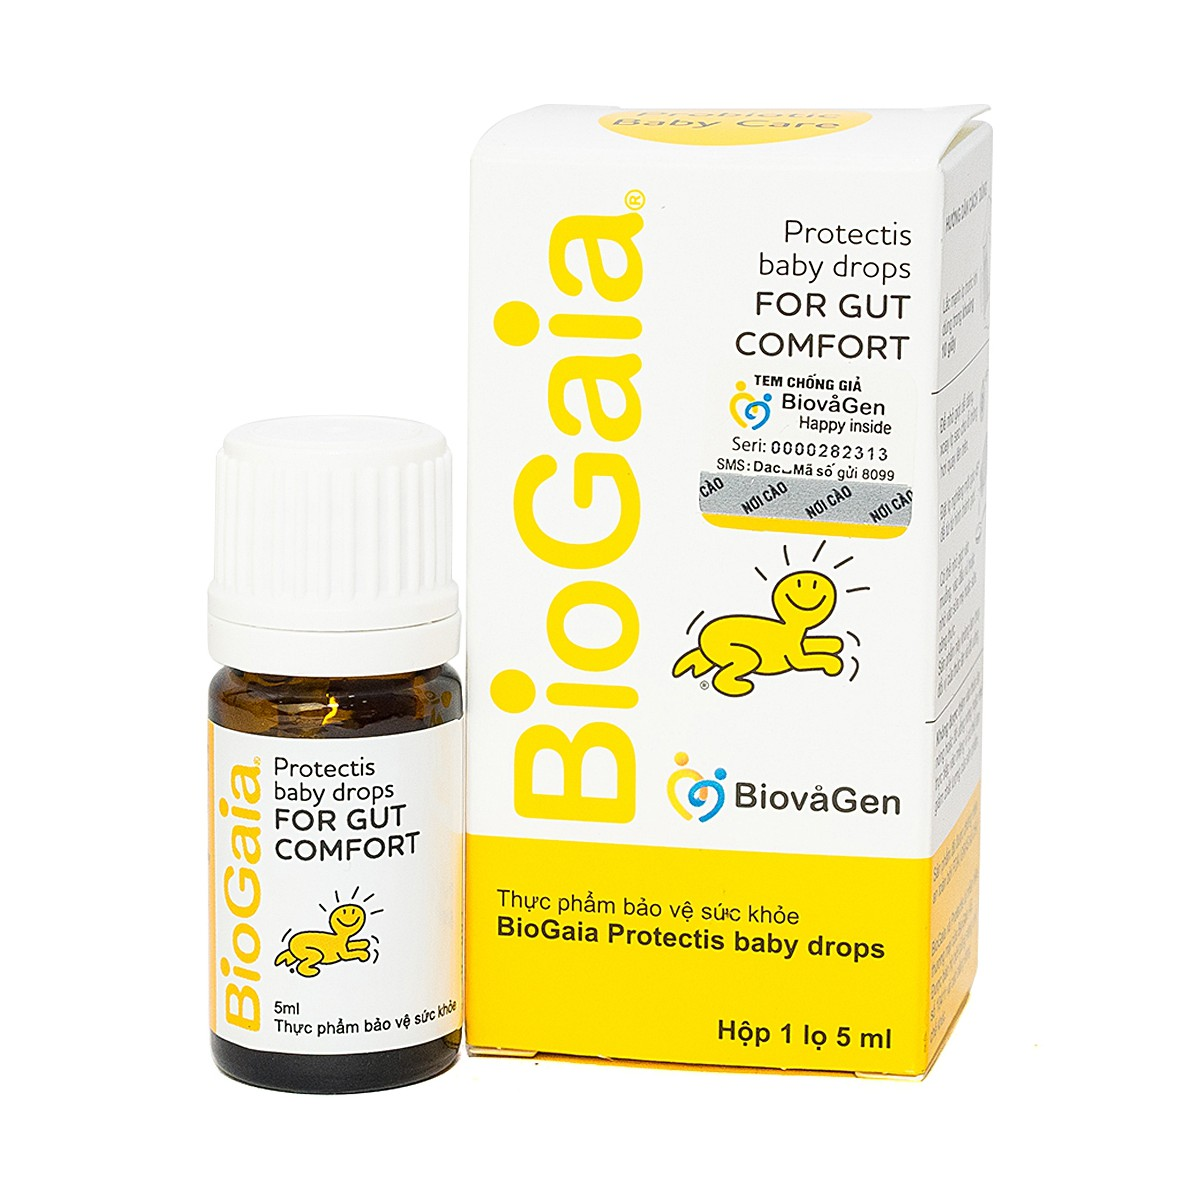 Men Vi Sinh Biogaia Protectis Baby Drops 5Ml